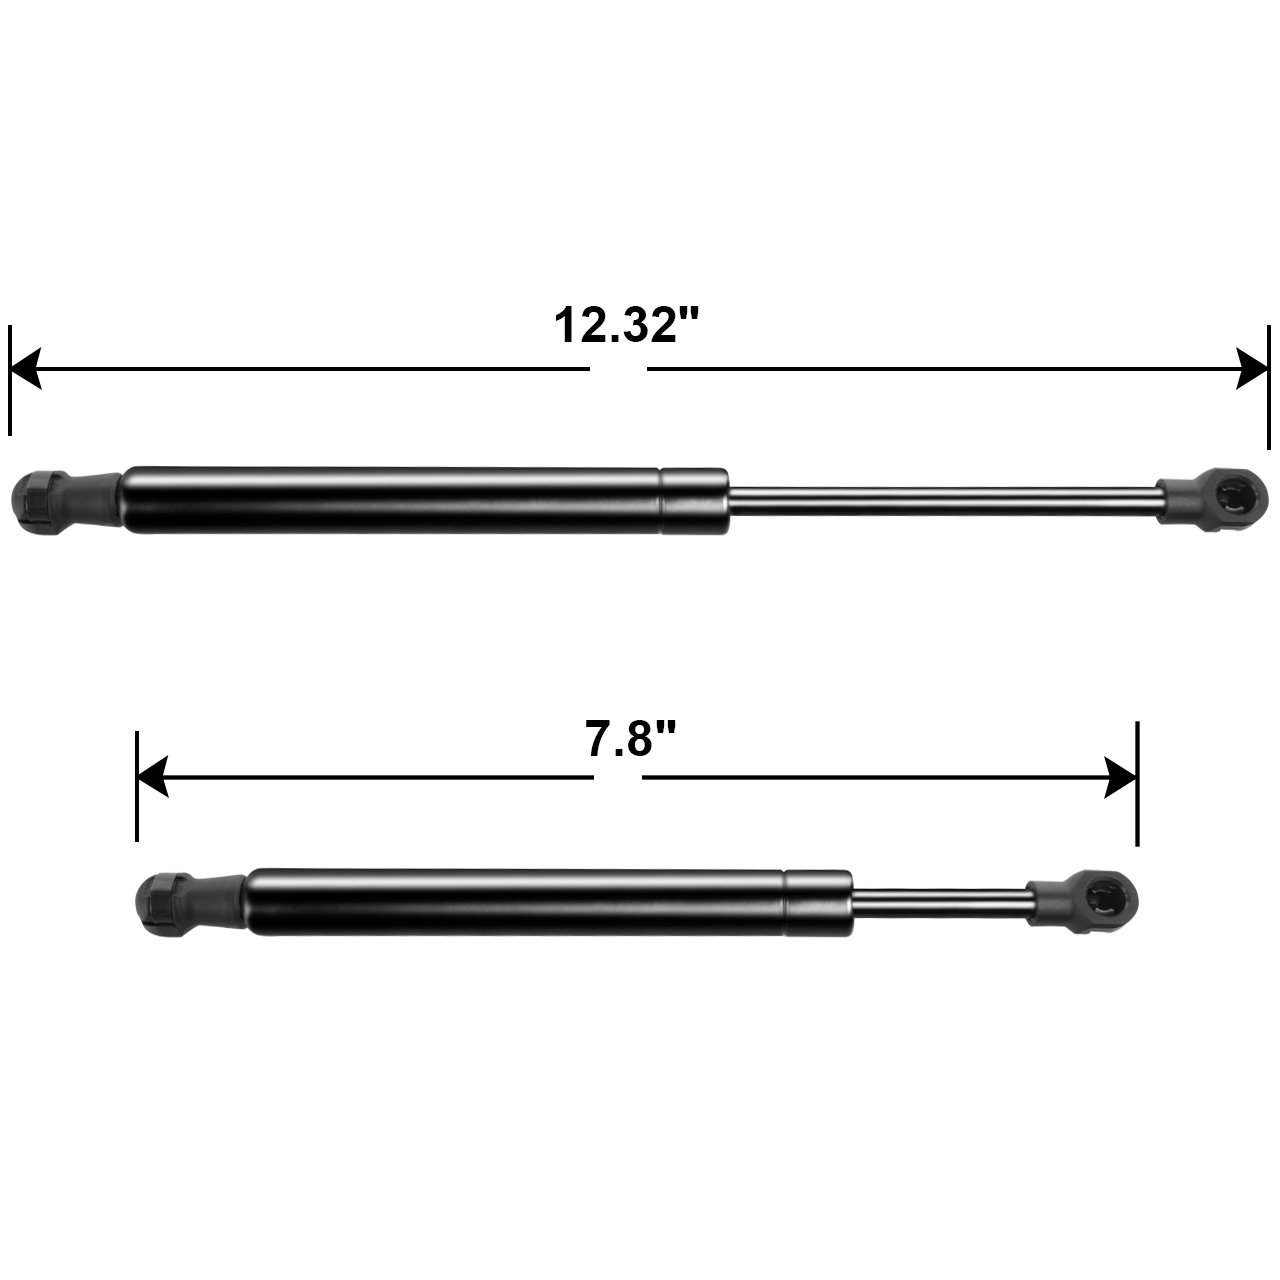 DEDC Pair Hood Lift Support for Ford Crown Victoria 98-11 SG404024